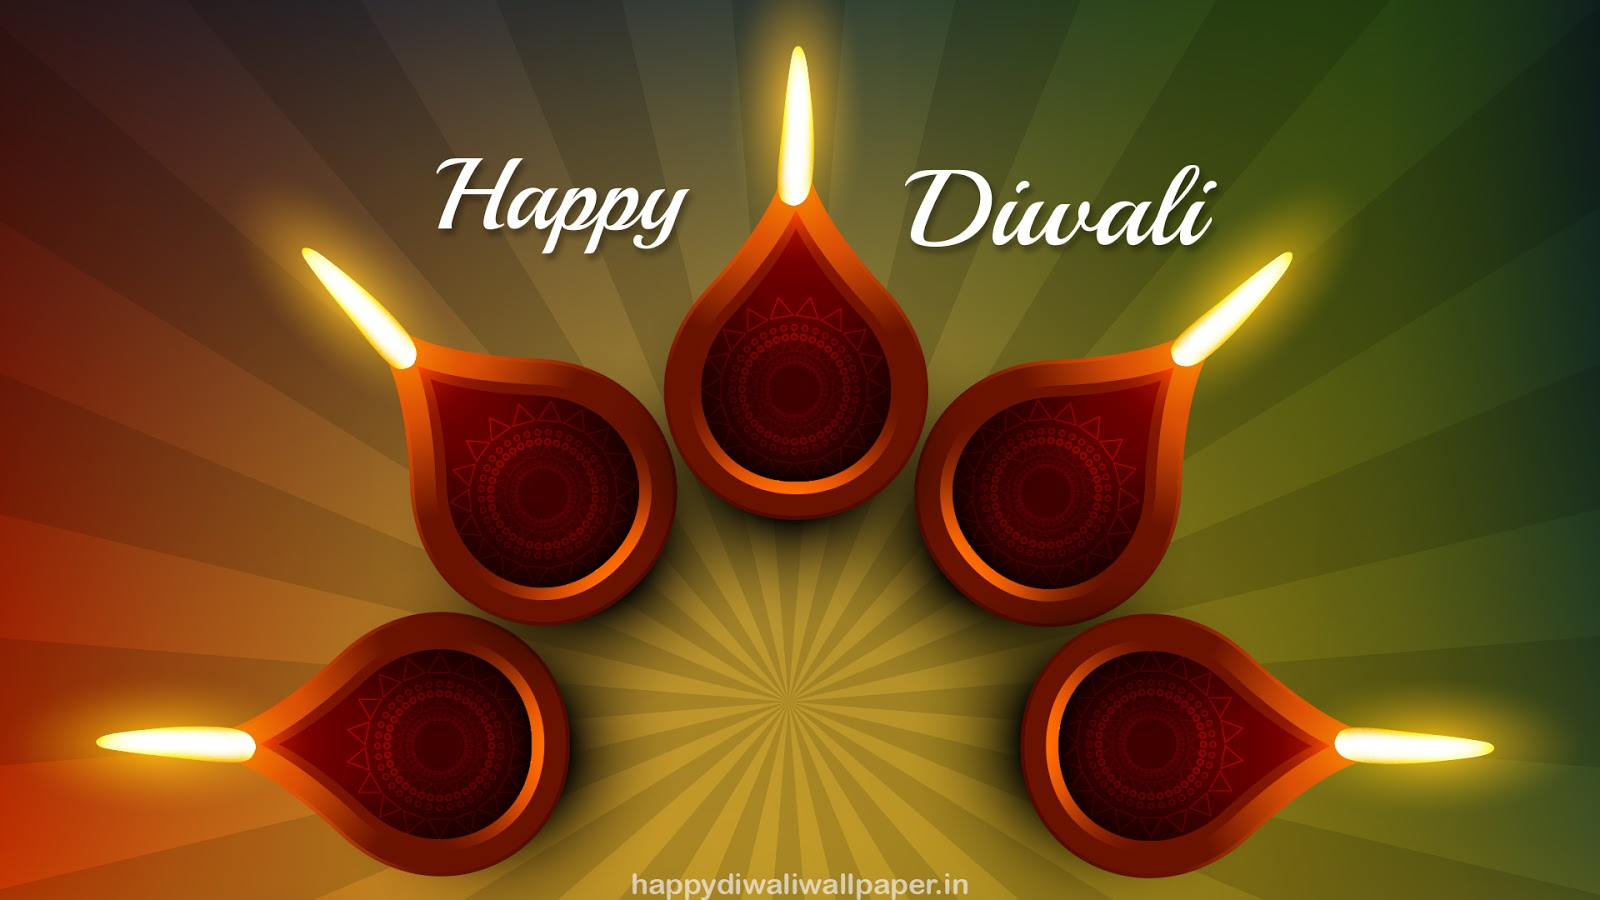 Happy diwali wallpaper 2017 diwalli whatsapp status videos happy diwali hd wallpaper images photos pics for desktop facebook and whatsapp m4hsunfo